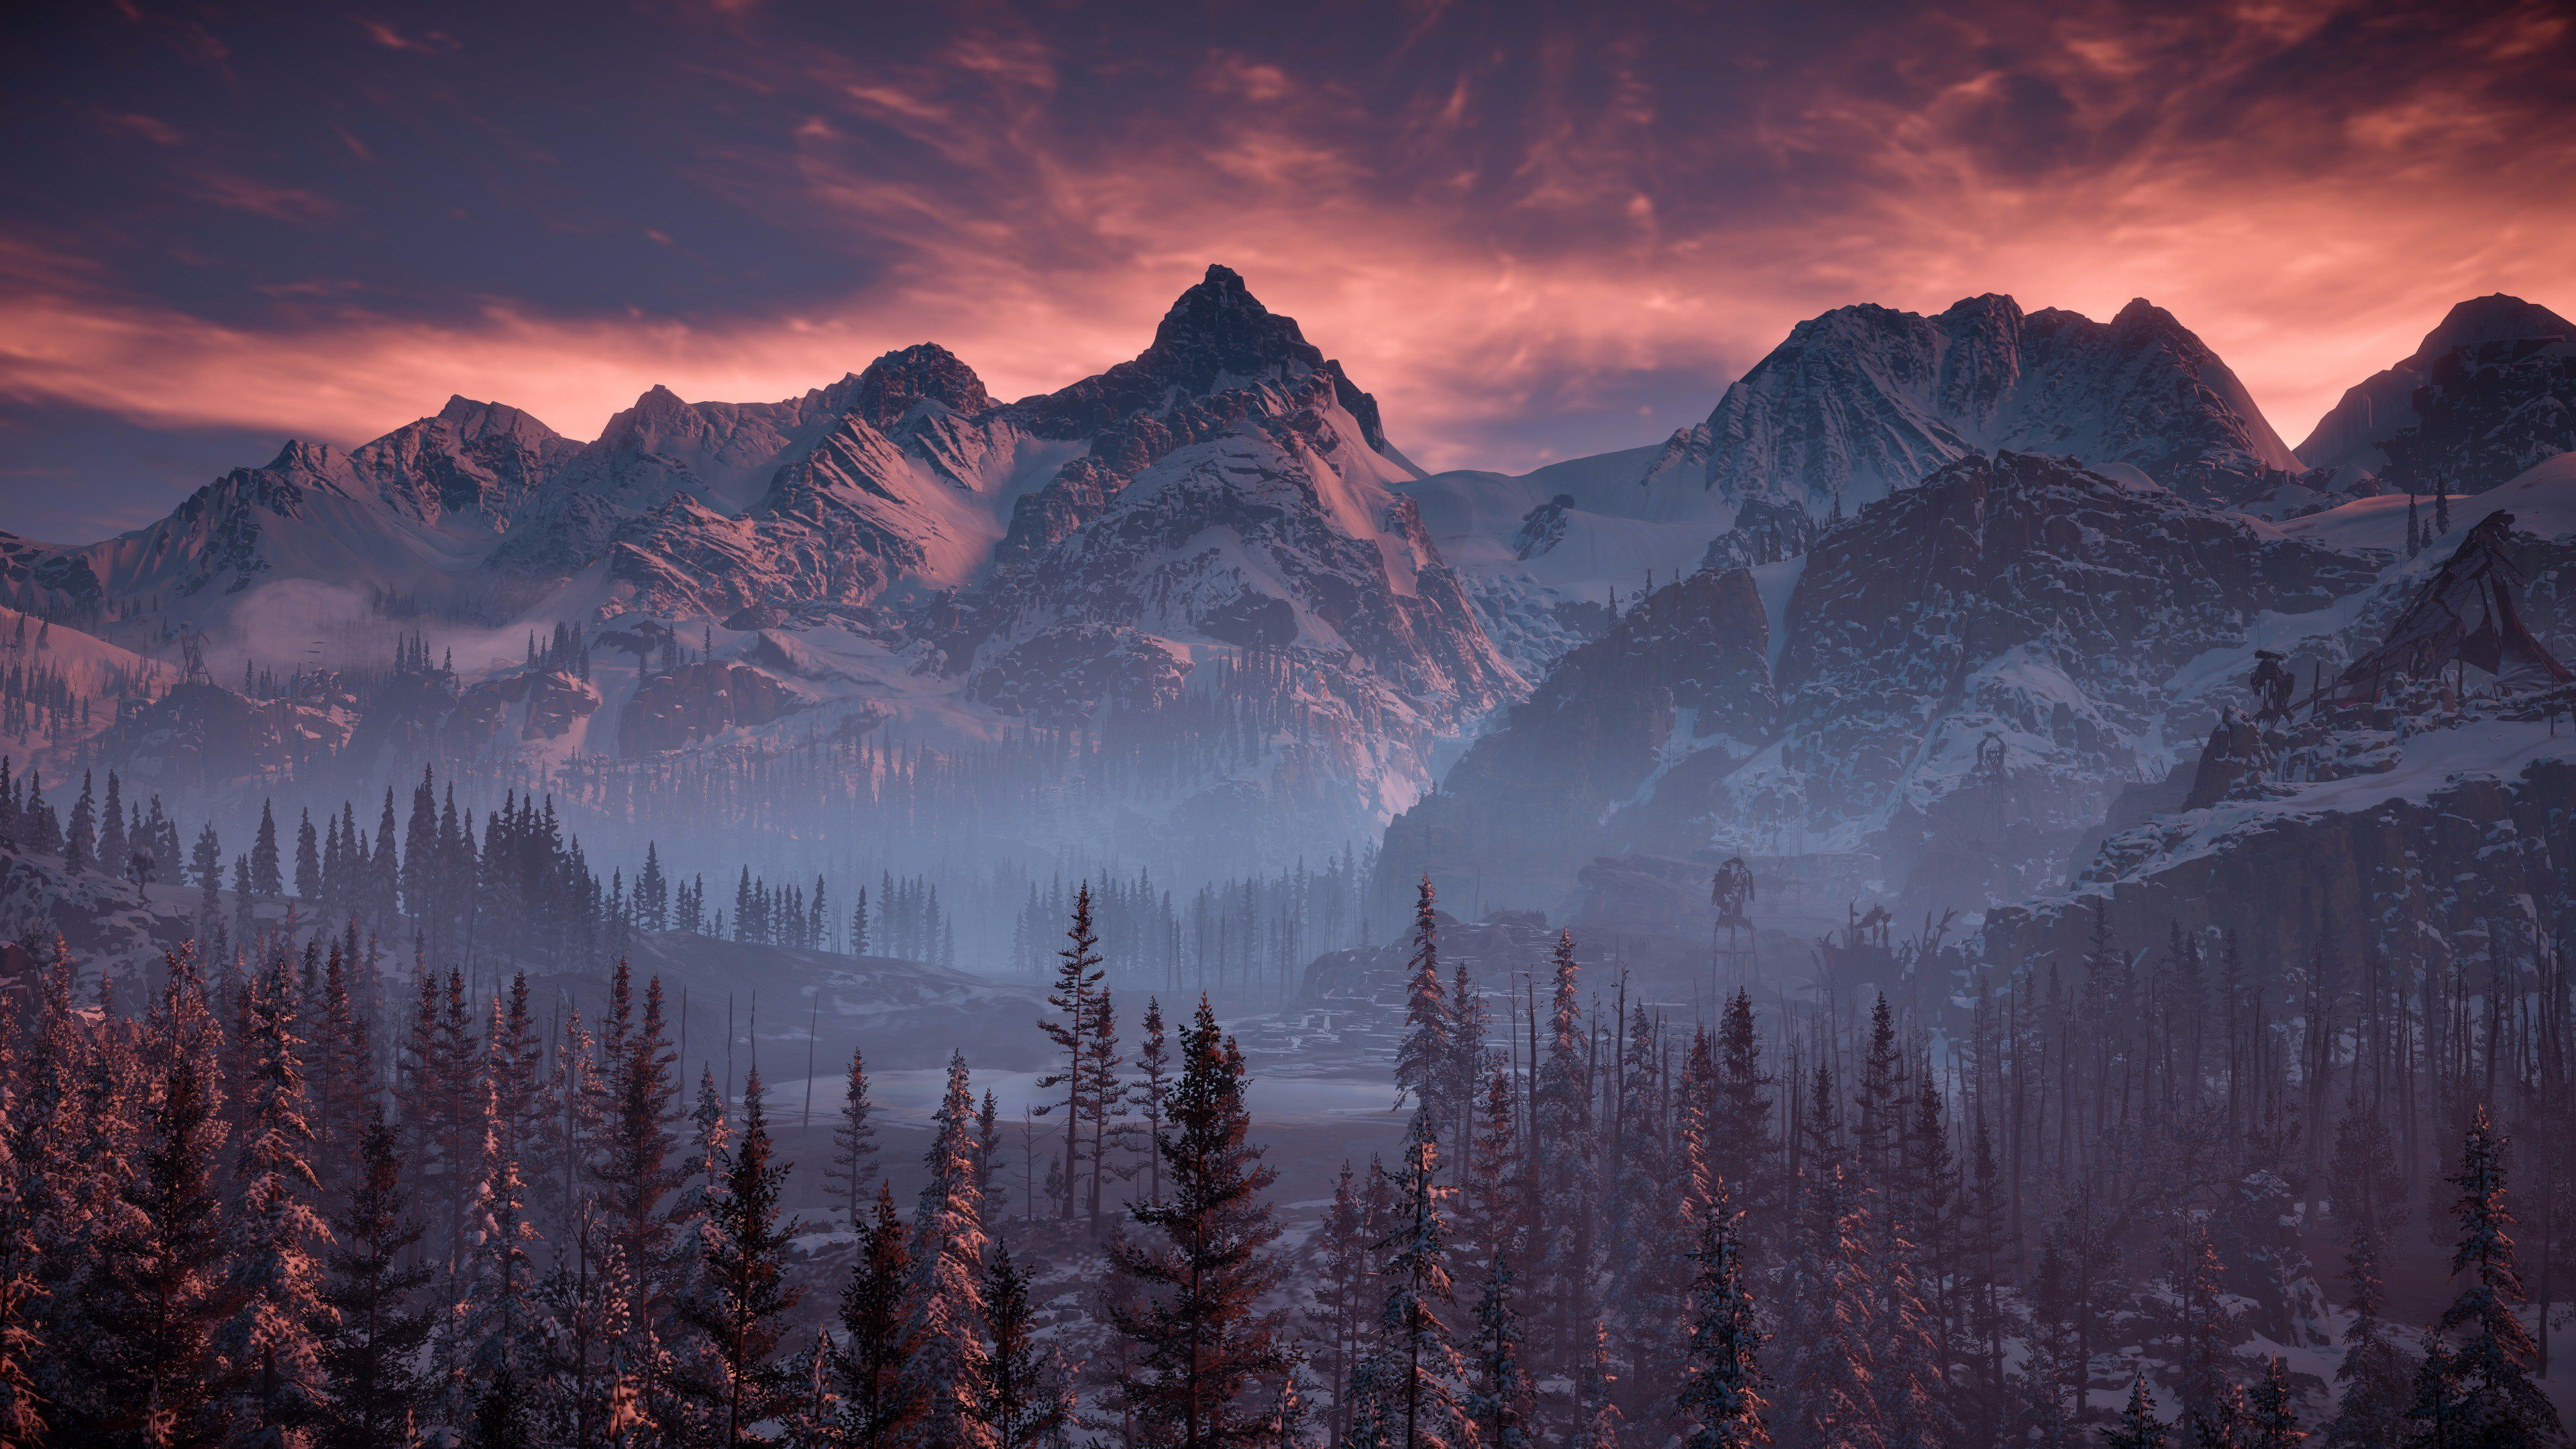 Trees And Mountains Silhouette Of Mountains And Trees Poster Horizon Ze Computer Wallpaper Desktop Wallpapers Landscape Wallpaper Horizon Zero Dawn Wallpaper